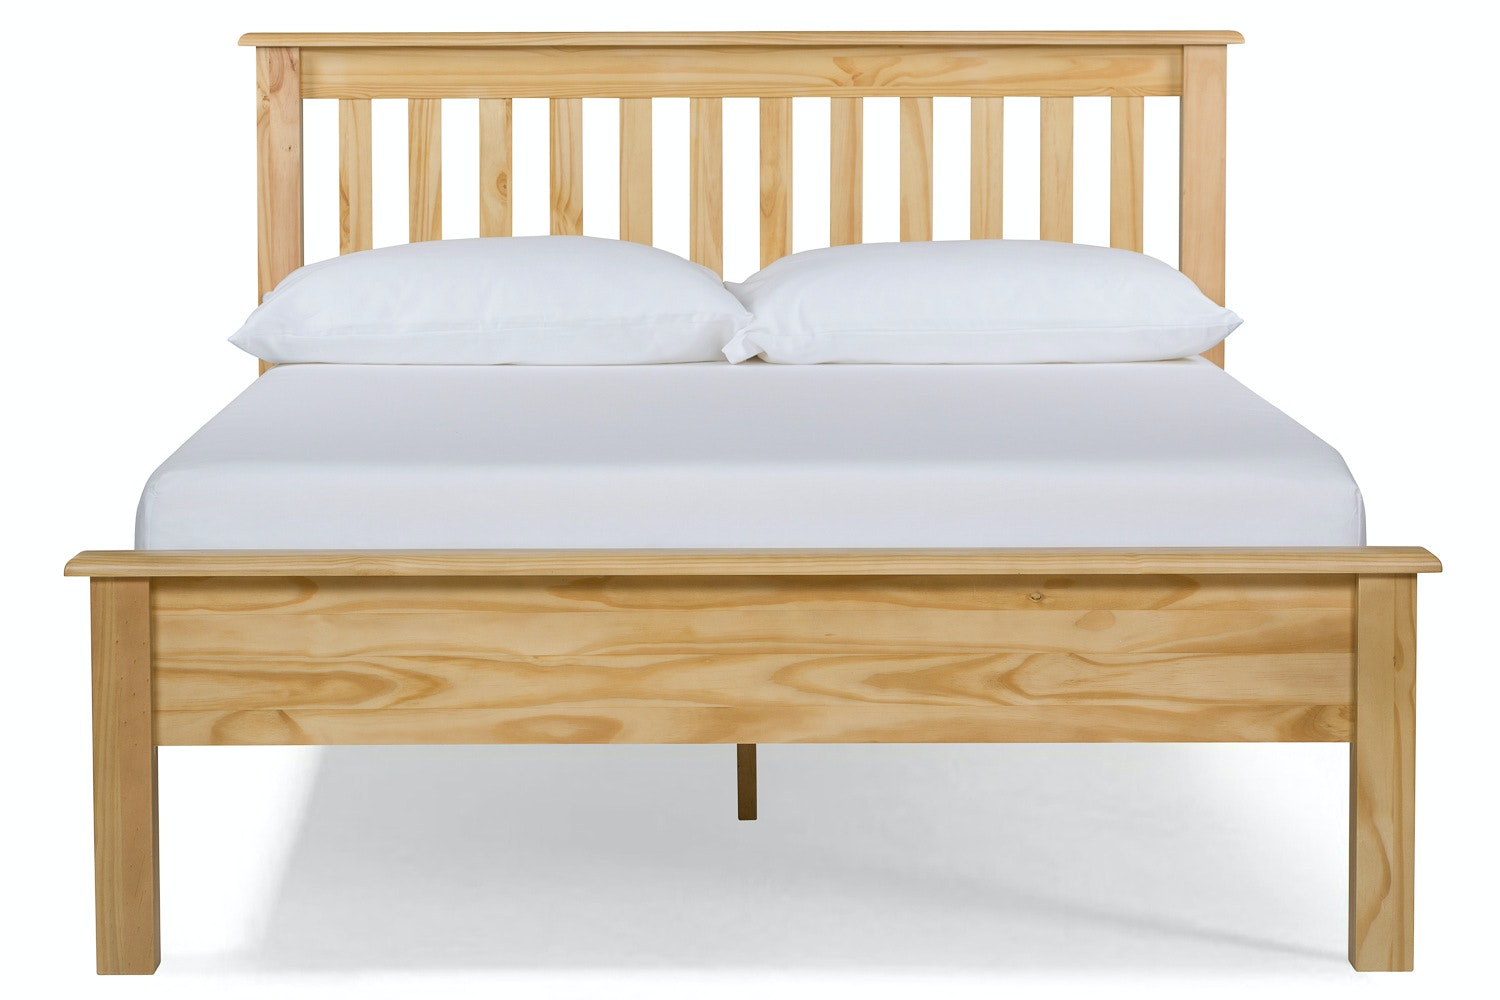 Shaker King Bed Frame | 5ft | Natural